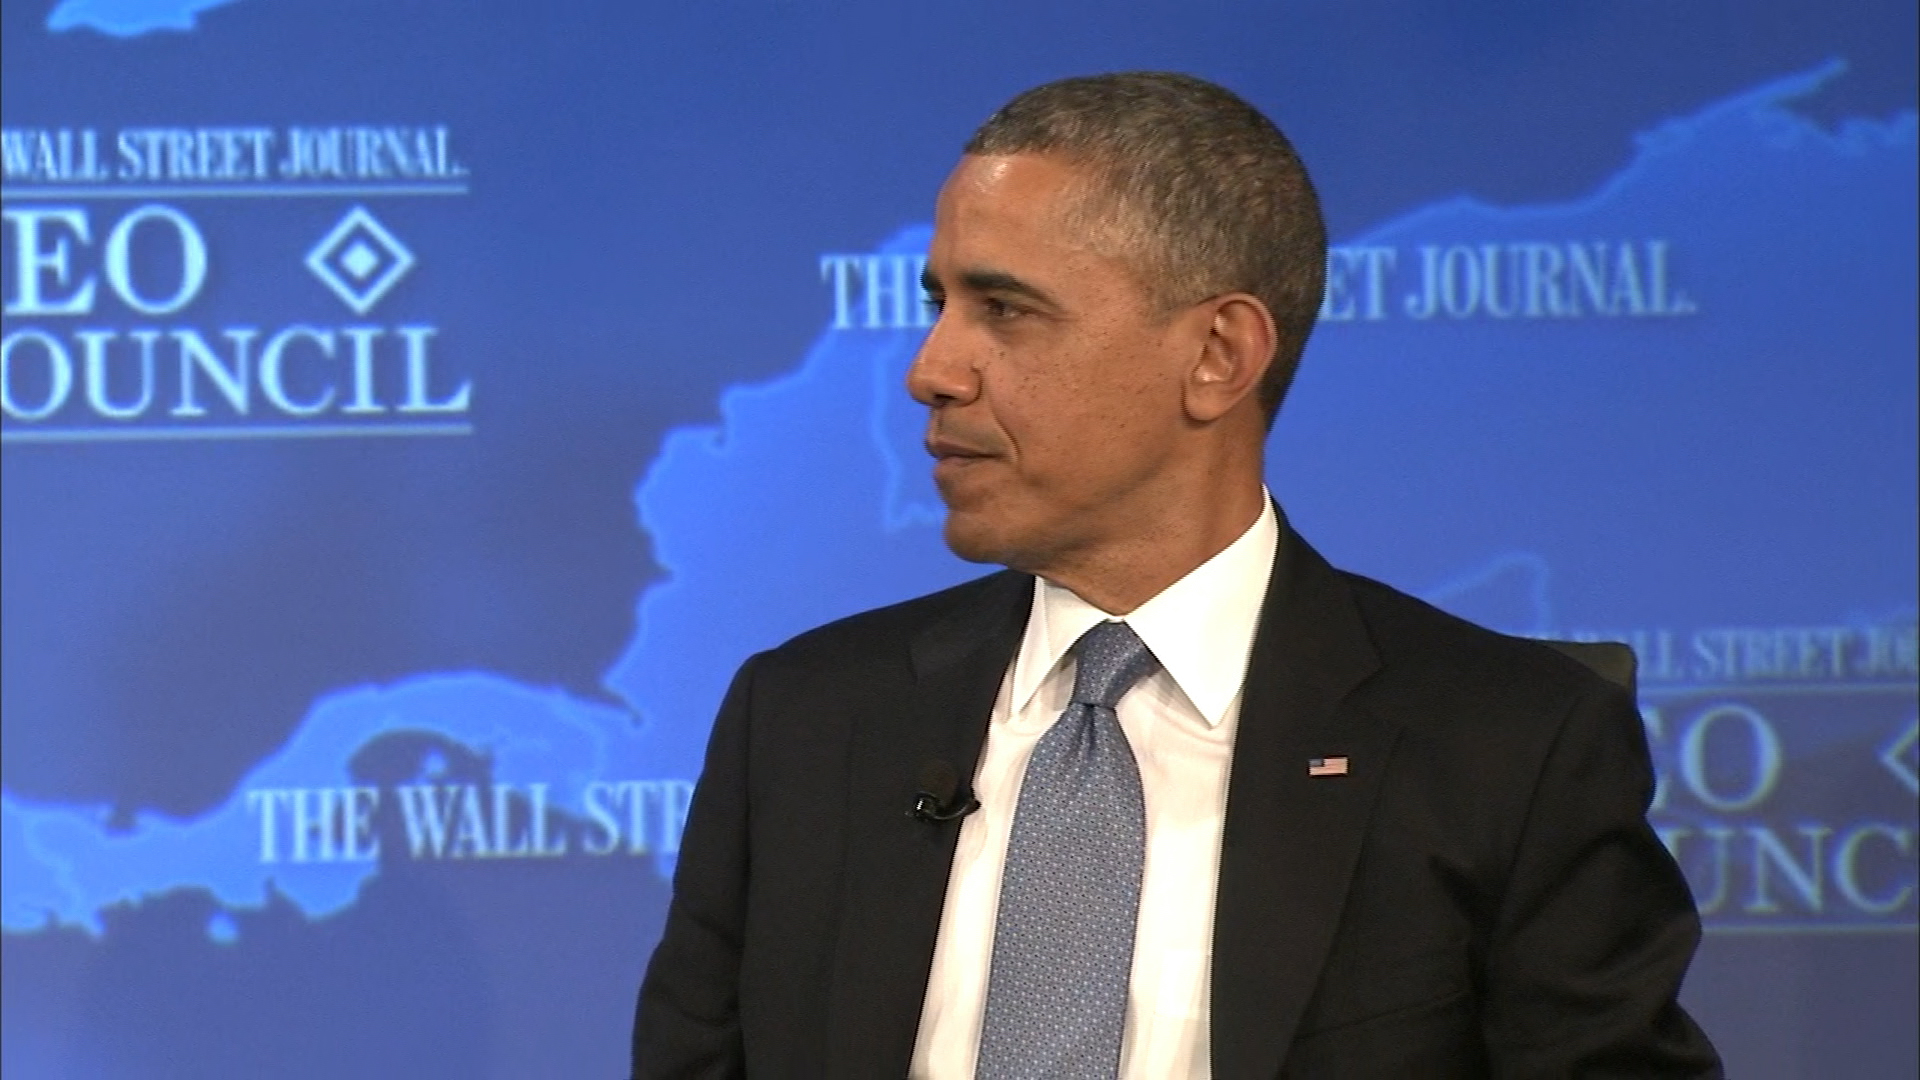 Obama defends rollout in WSJ interview